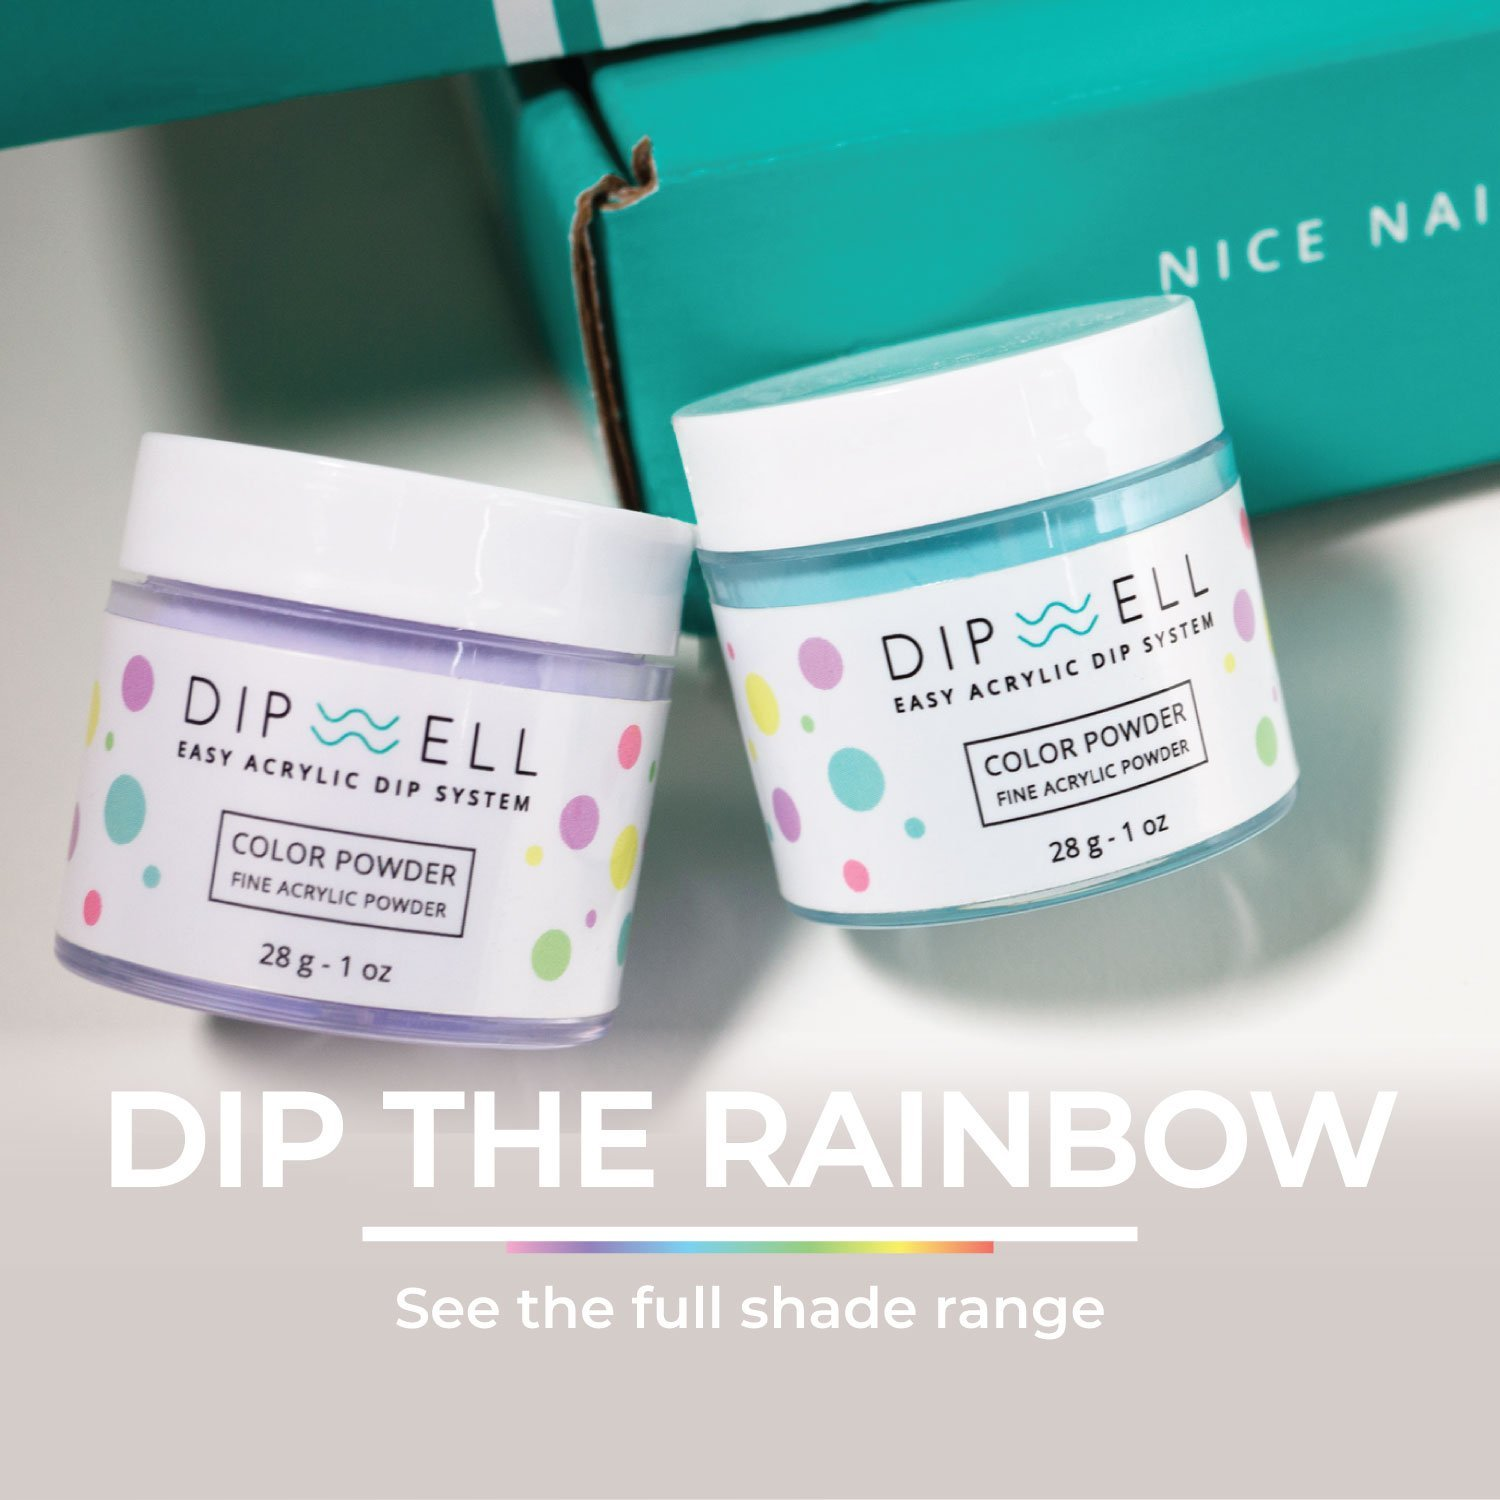 Dip the rainbow